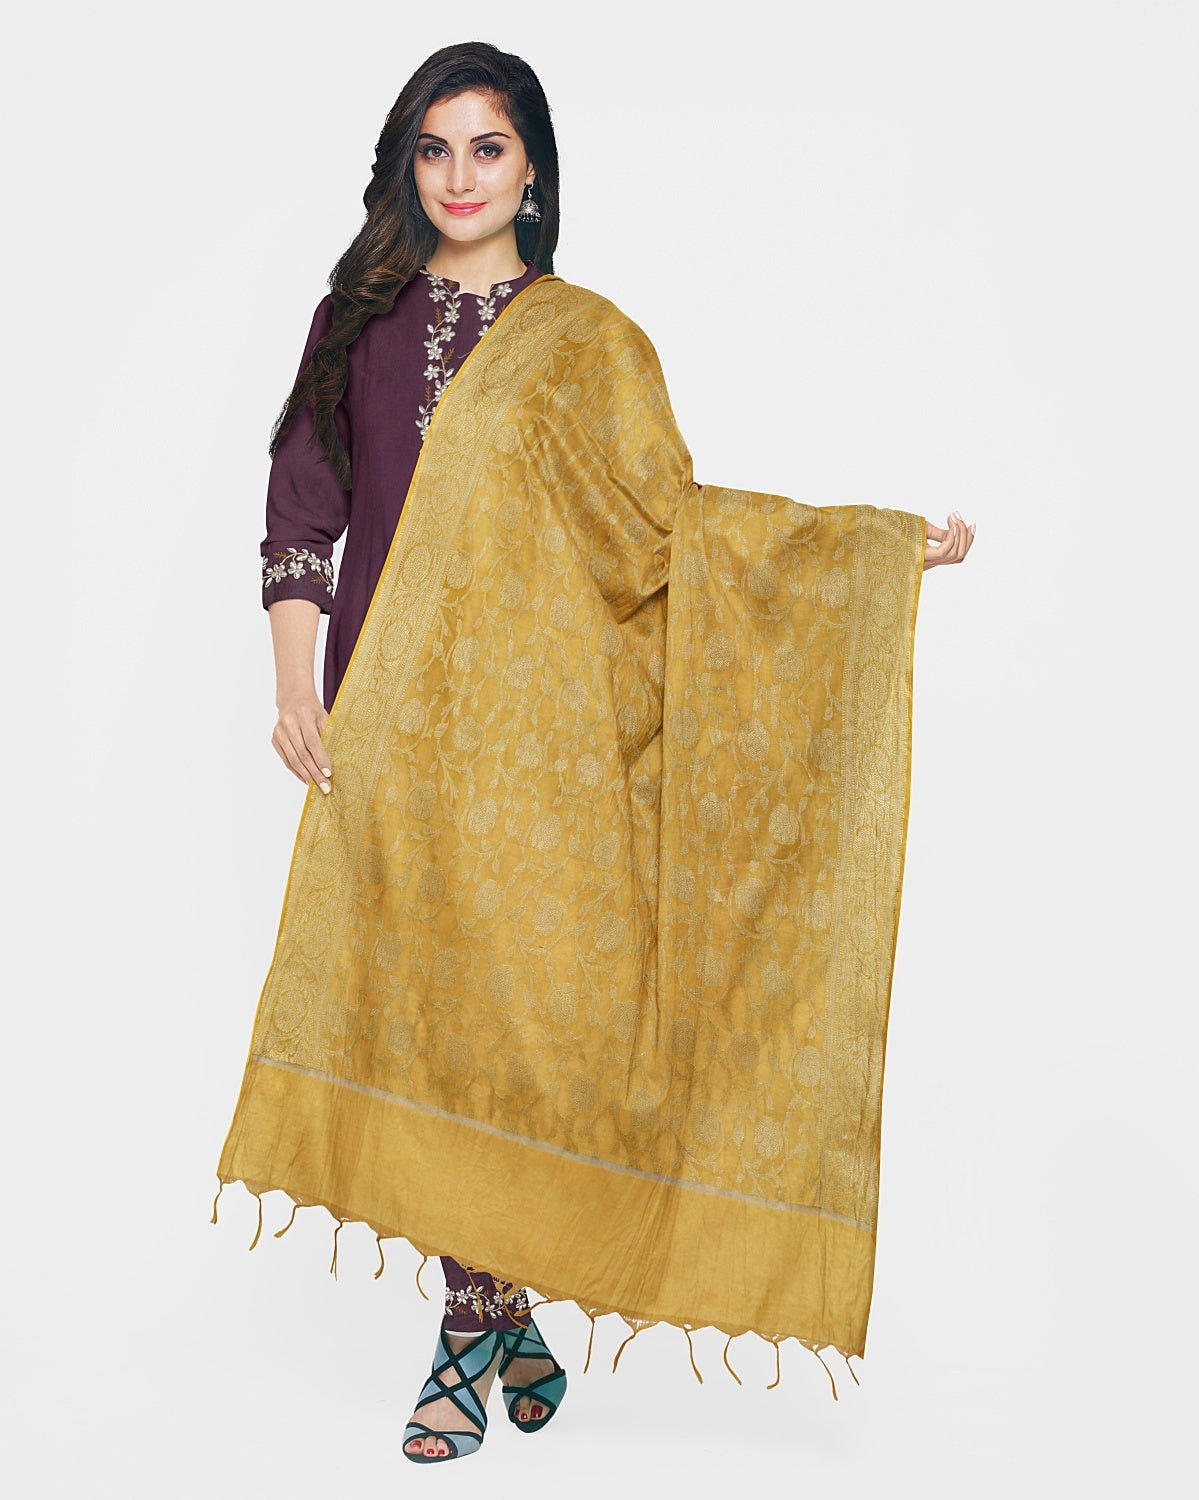 Mauve & Golden Yellow Gota Patti Suit Fabric Set